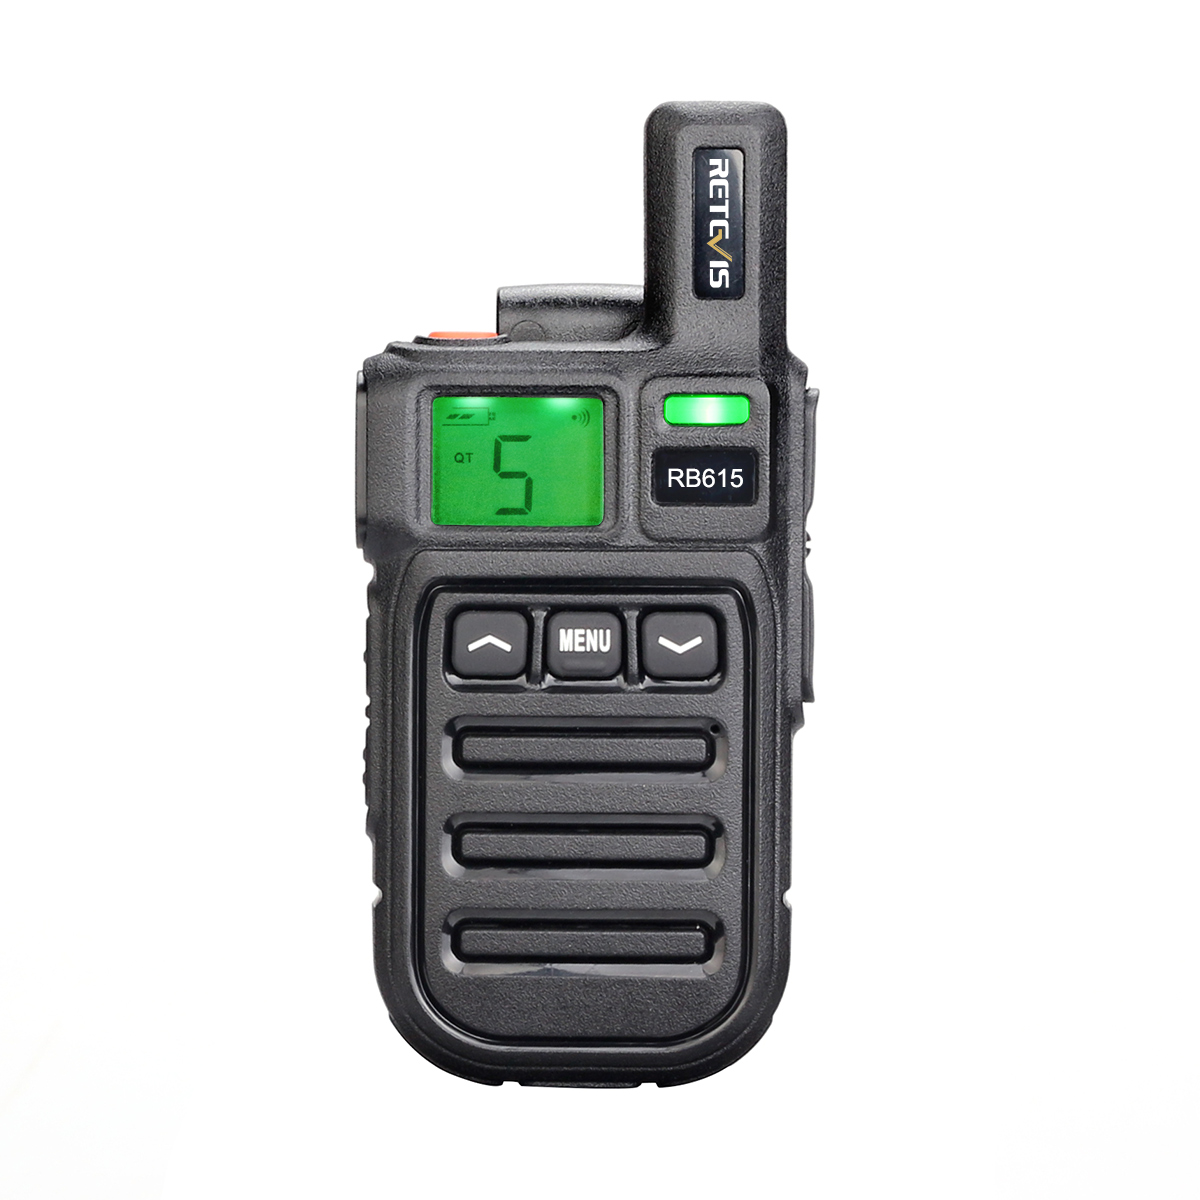 Retevis RB615 Lange palette professional walkie talkie lizenz kostenloser PMR446 0,5 W Two Way Radio mit Vibration Wireless Klonen